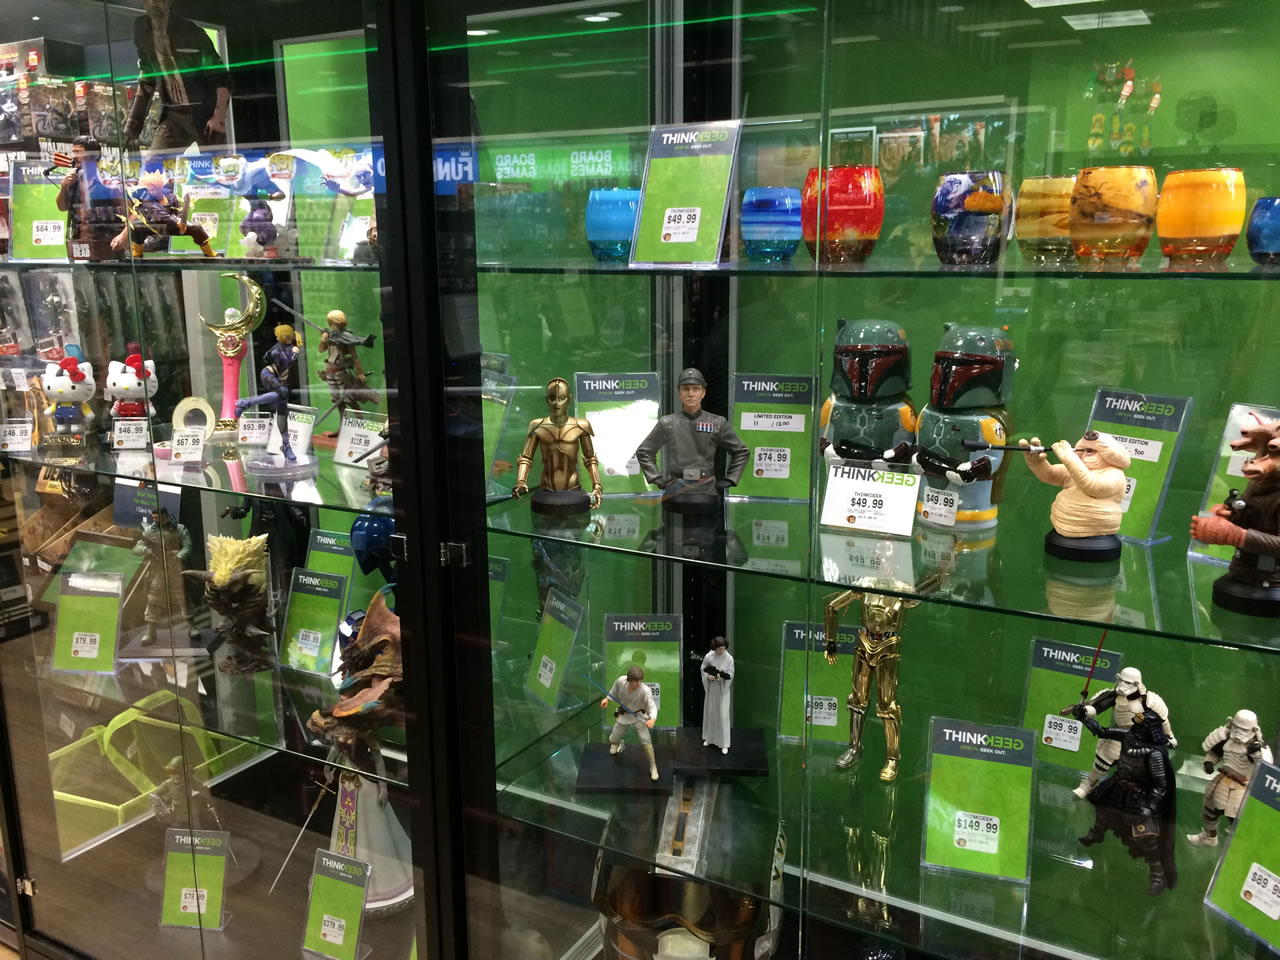 46 thinkgeek store - figurines